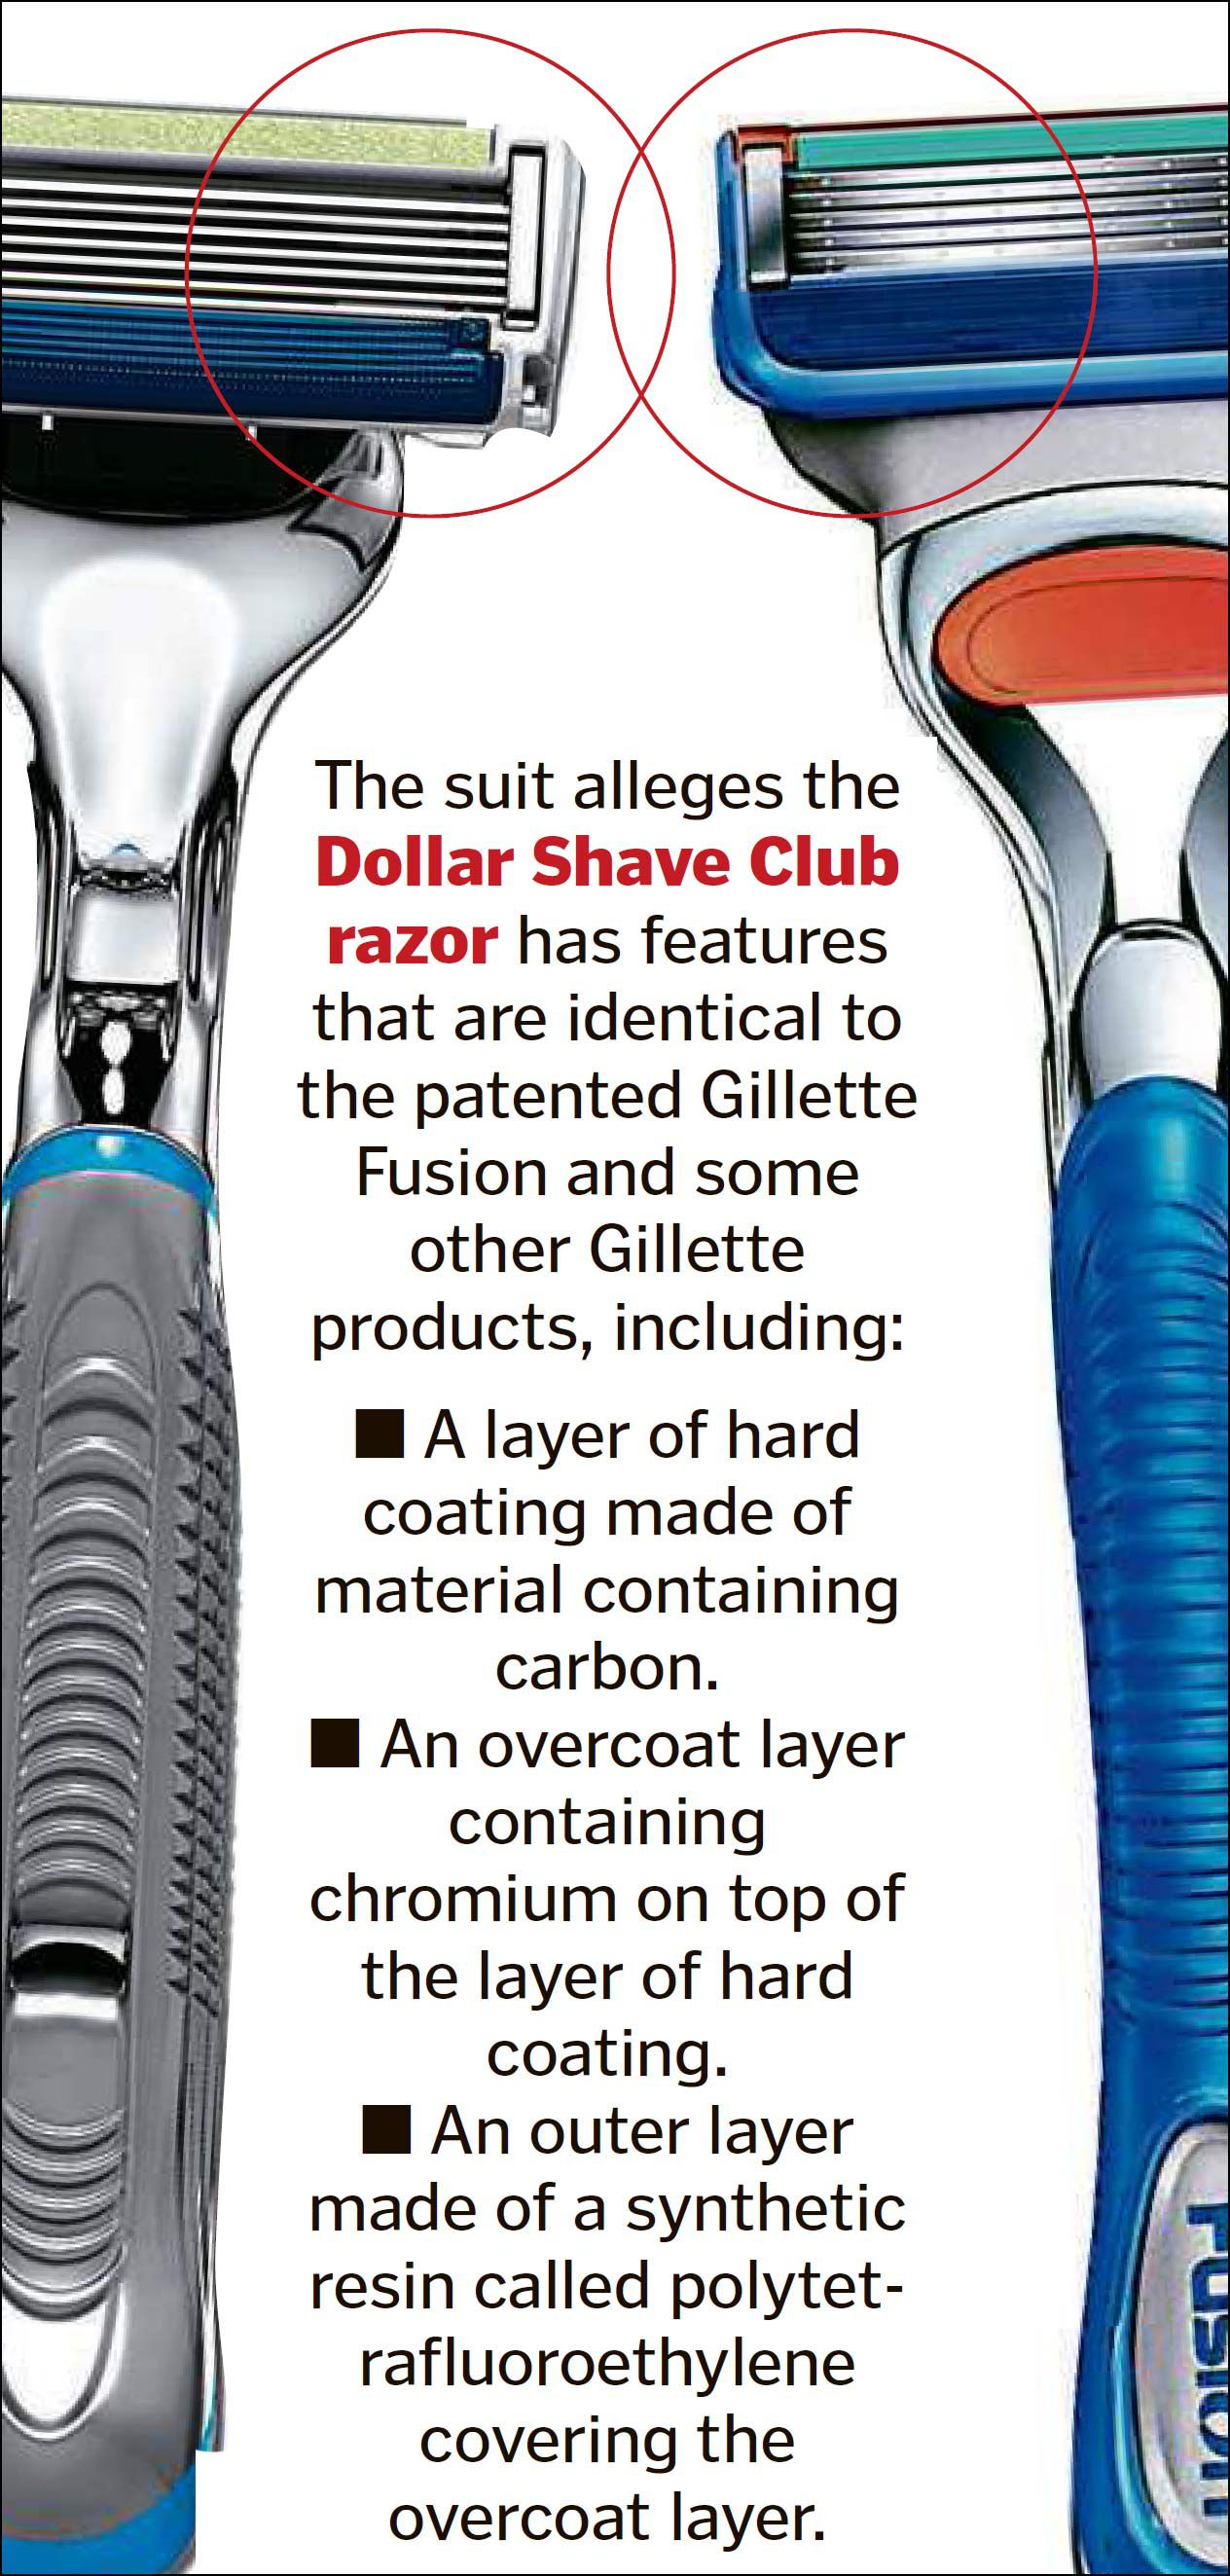 Gillette sues Dollar Shave Club for patent infringement - The Boston